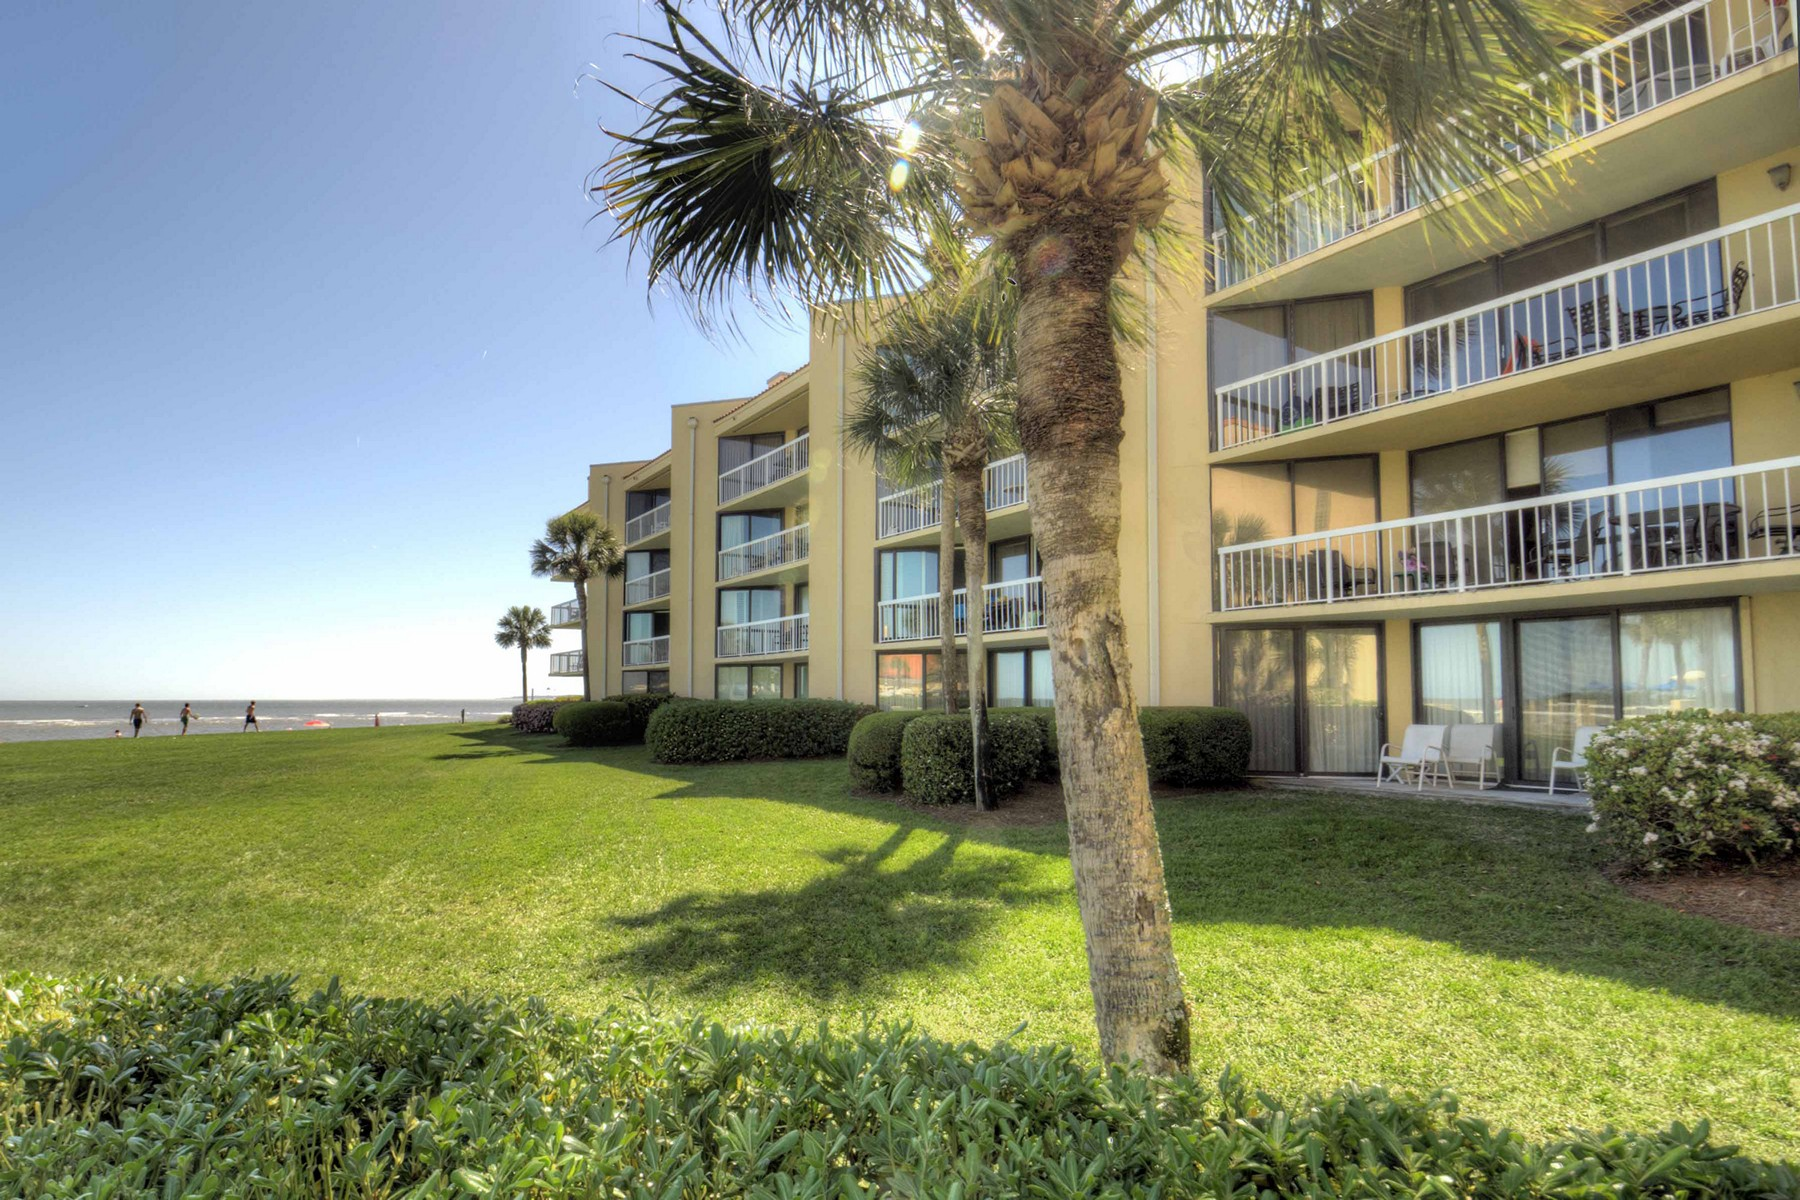 شقة بعمارة للـ Sale في #347 King and Prince 201 Neptune Road Unit 347, St. Simons Island, Georgia, 31522 United States